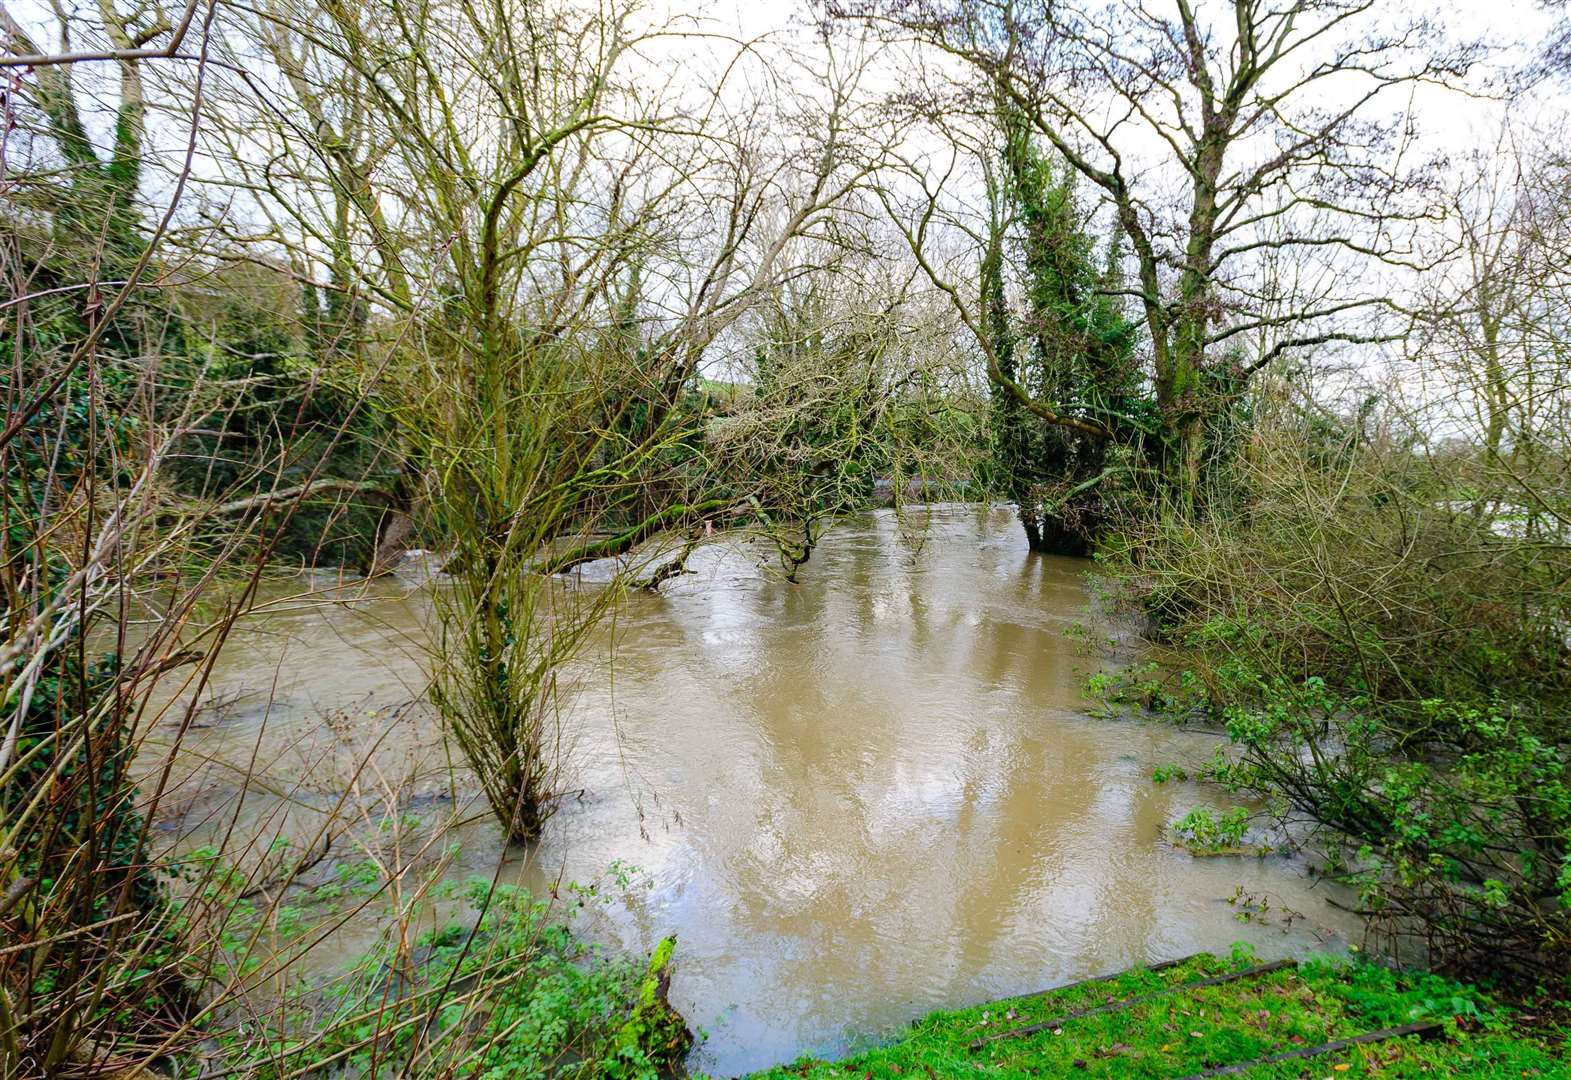 Cornard residents criticise inaction of authorities after scrambling to fight off floods